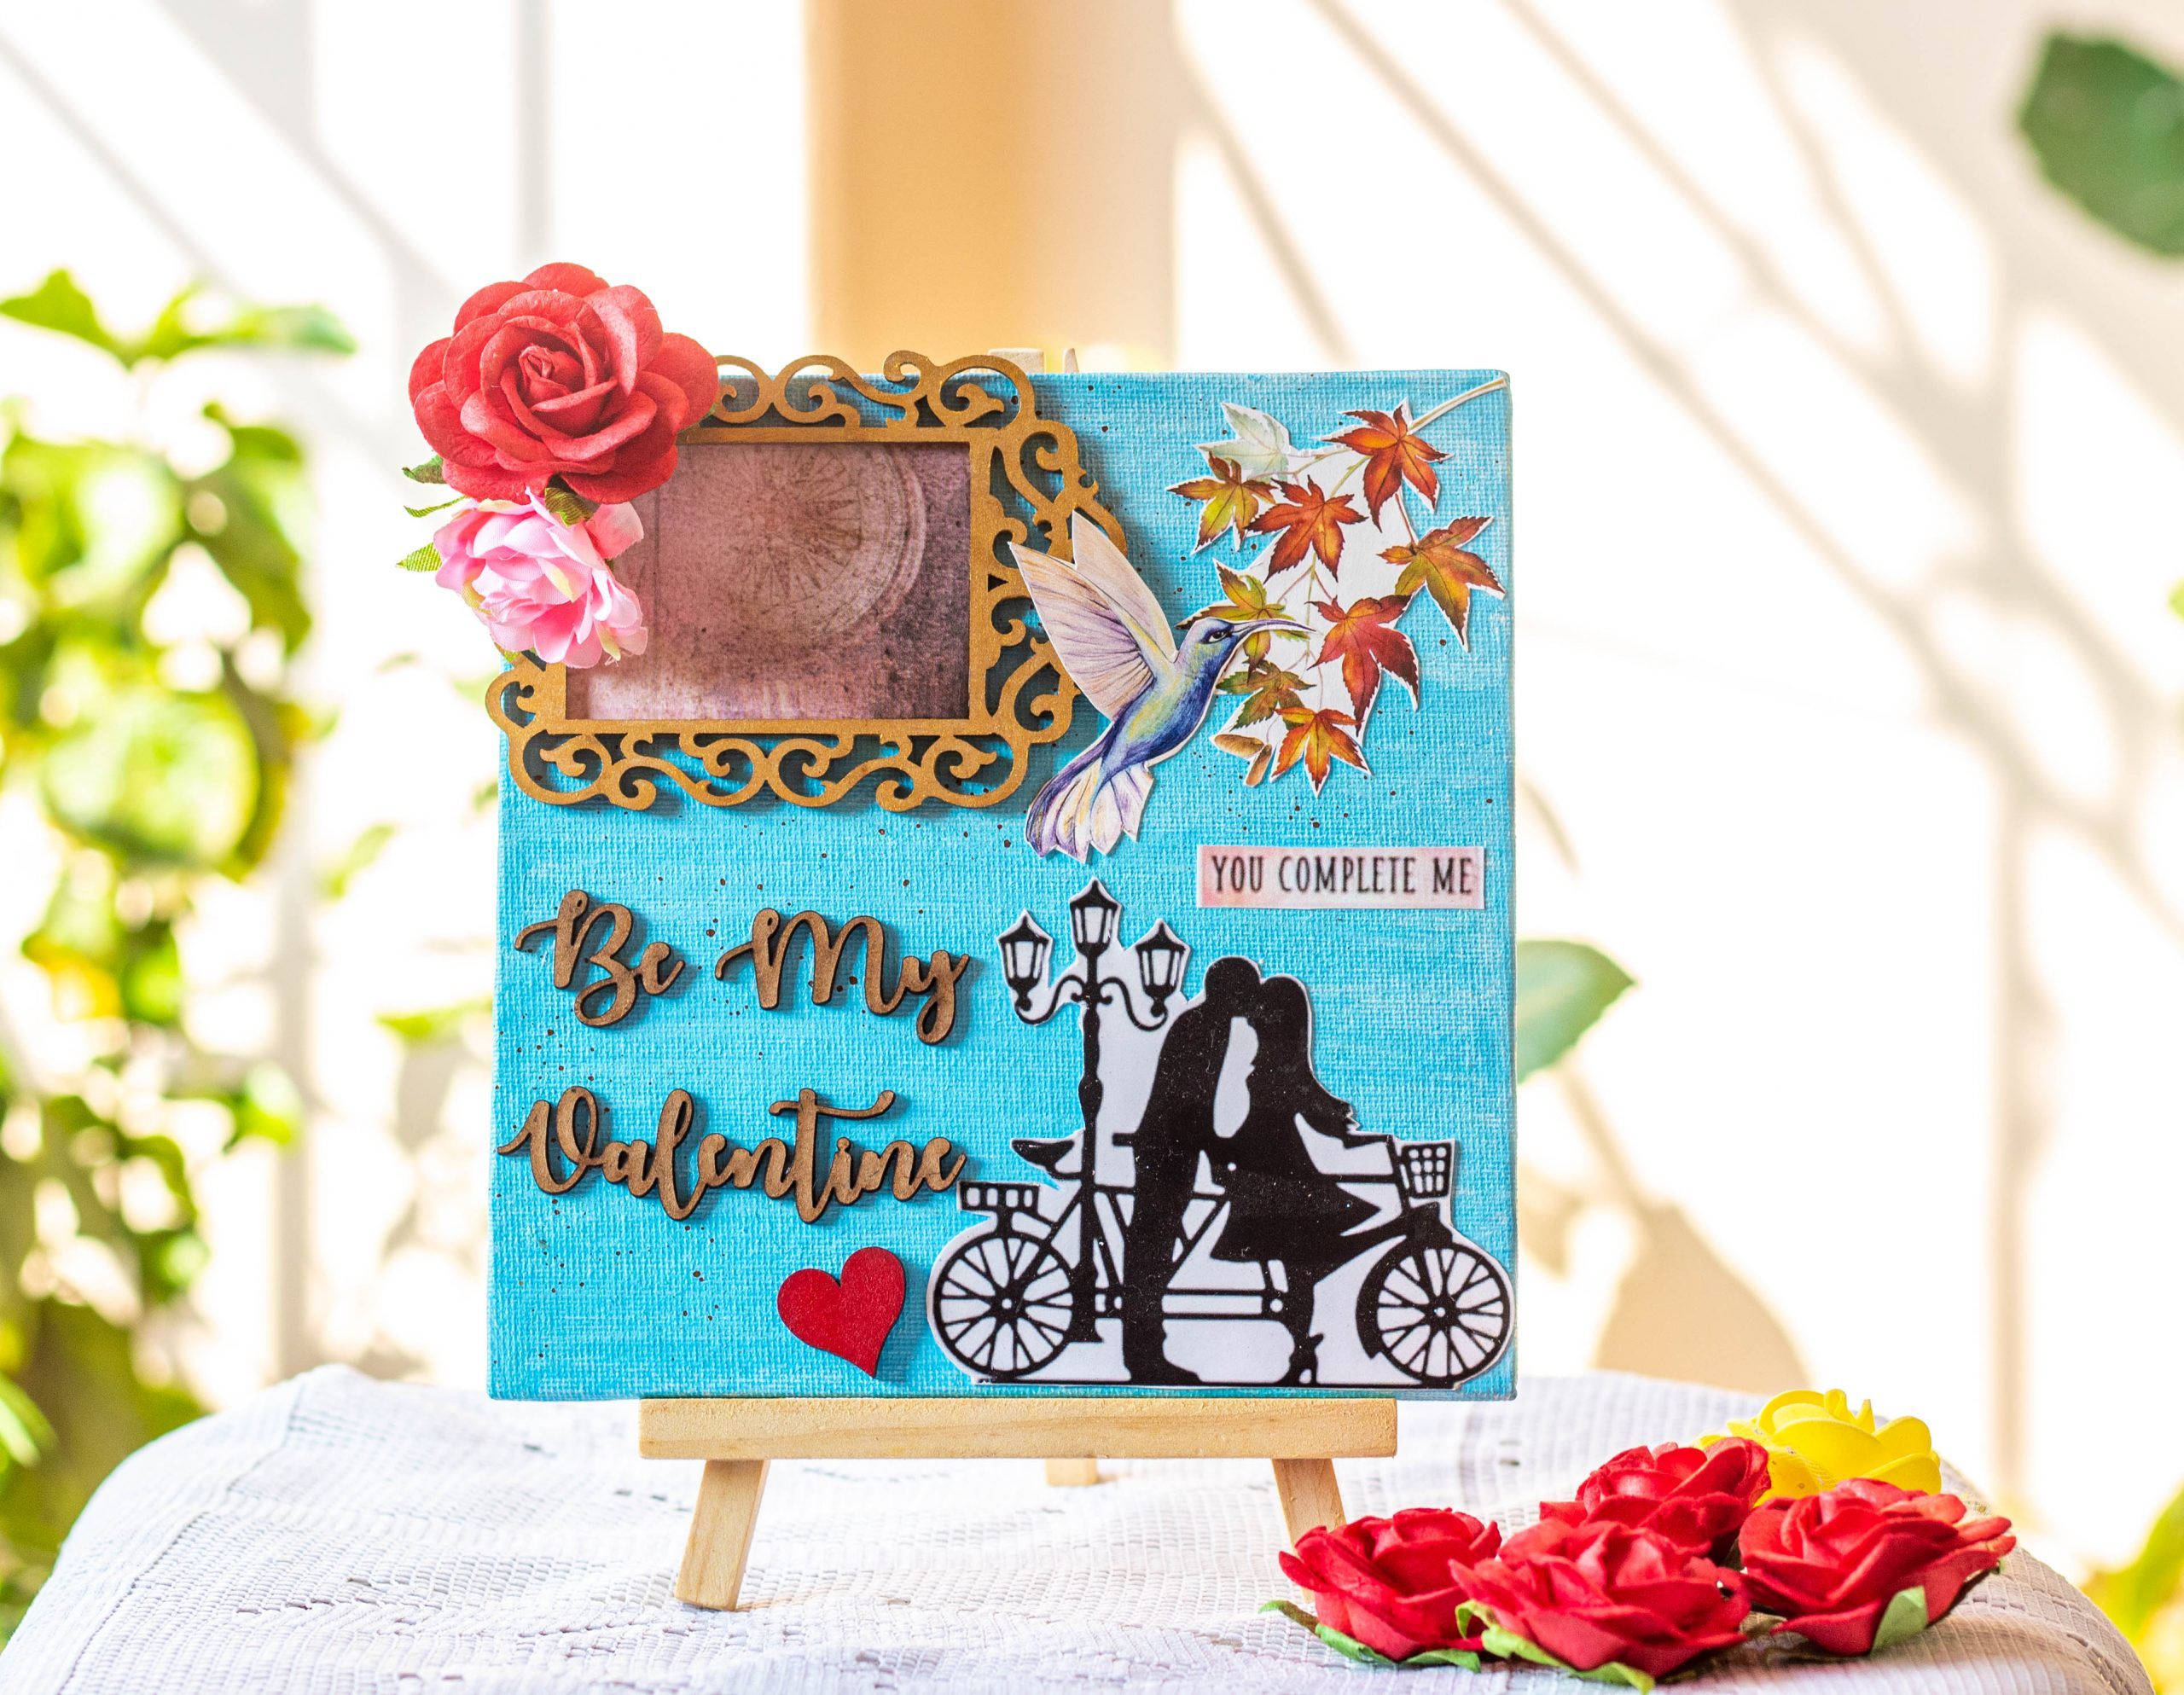 Valentines Day themed canvas  IMG 4995